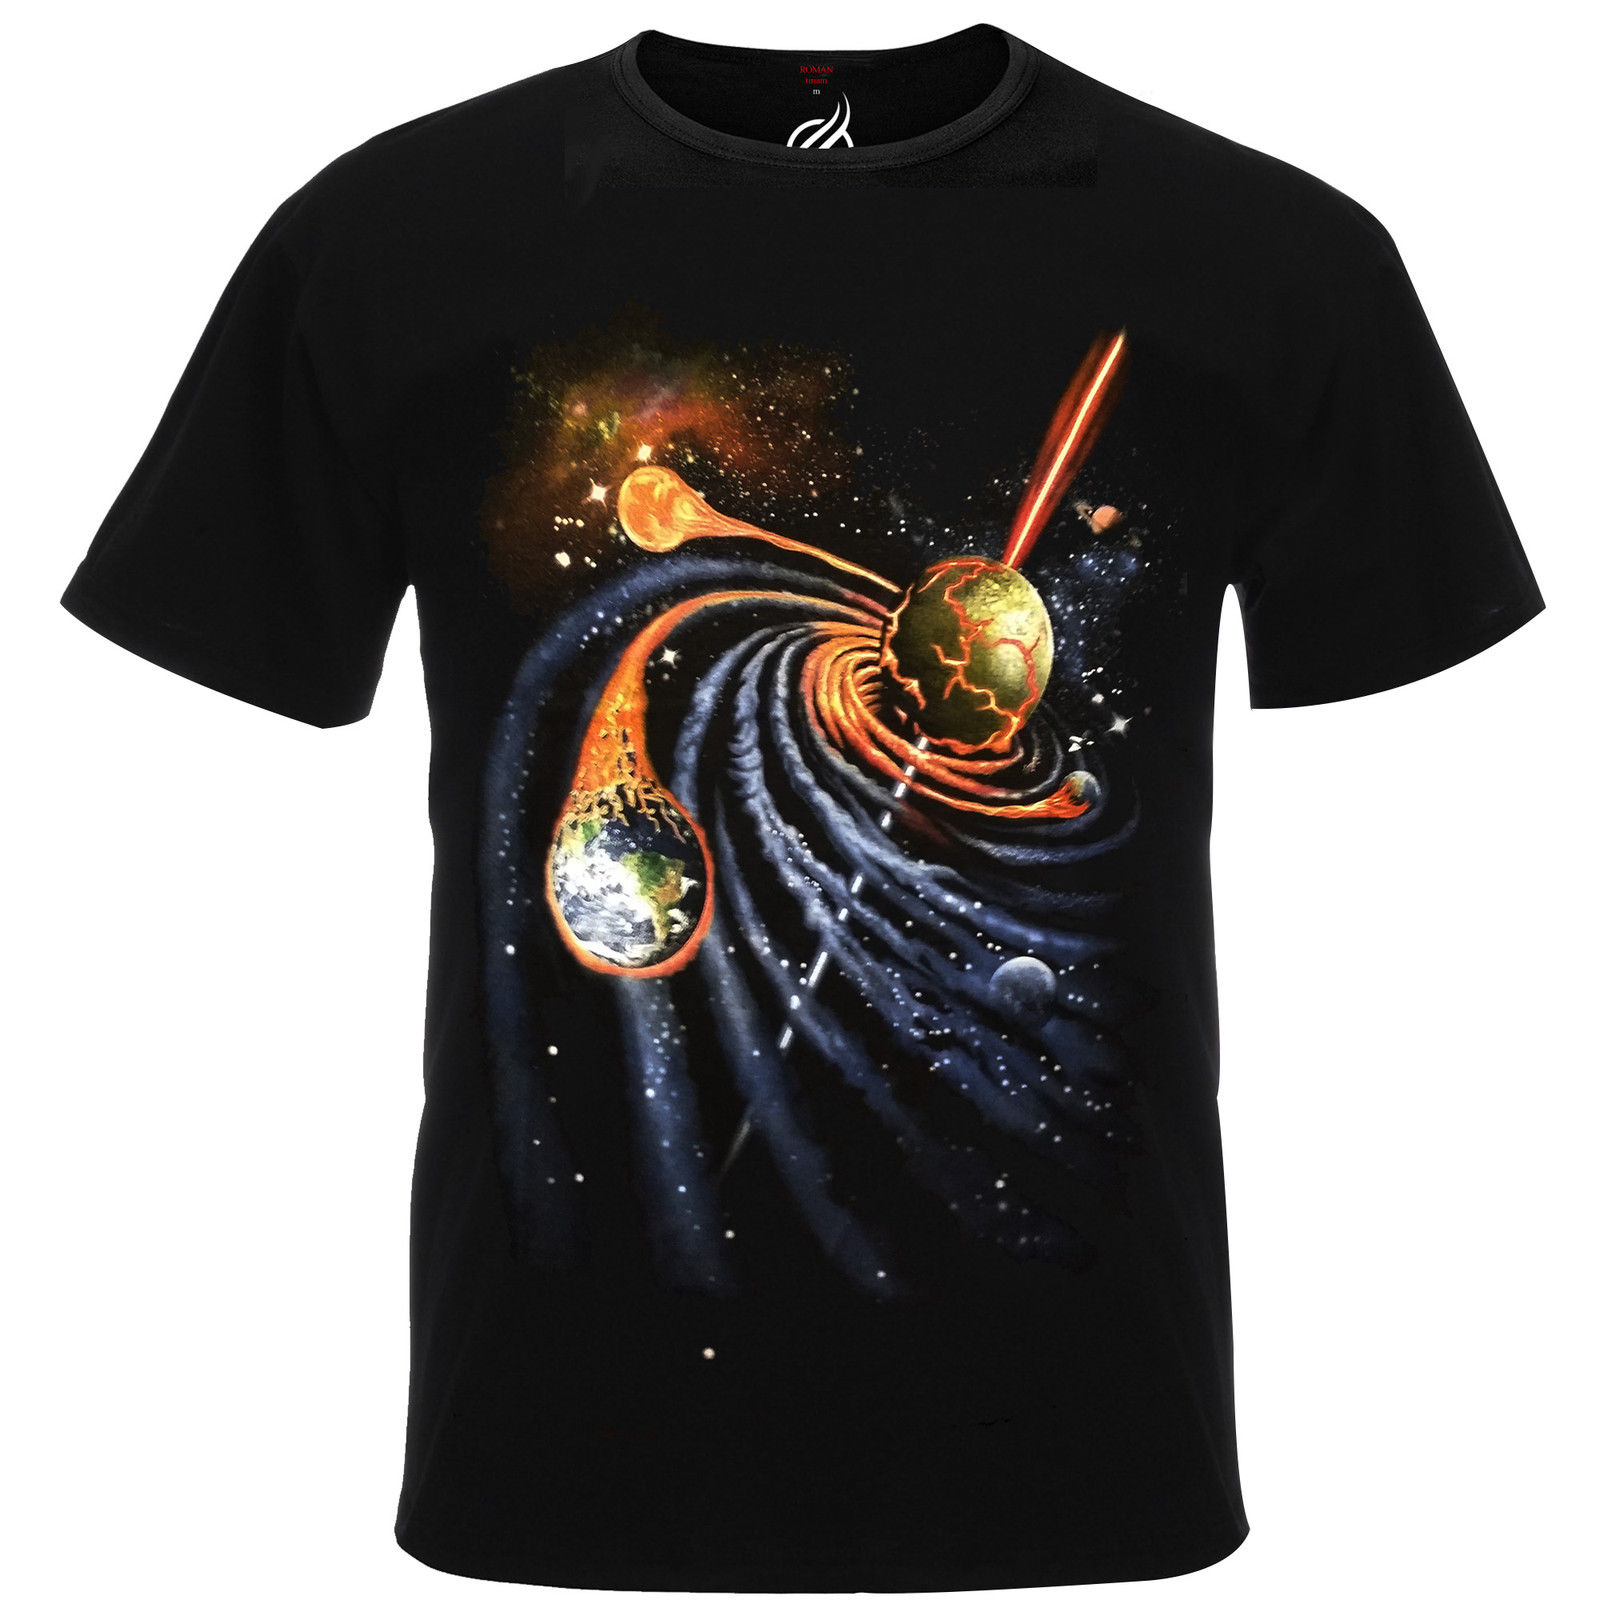 T-shirts Tops & Tees Amicable Galactic Spiral Quasar Meteor Earth Aflame Deep Space Tshirt Tee Shirt Top Rm04t Cool Casual Pride T Shirt Men Unisex New